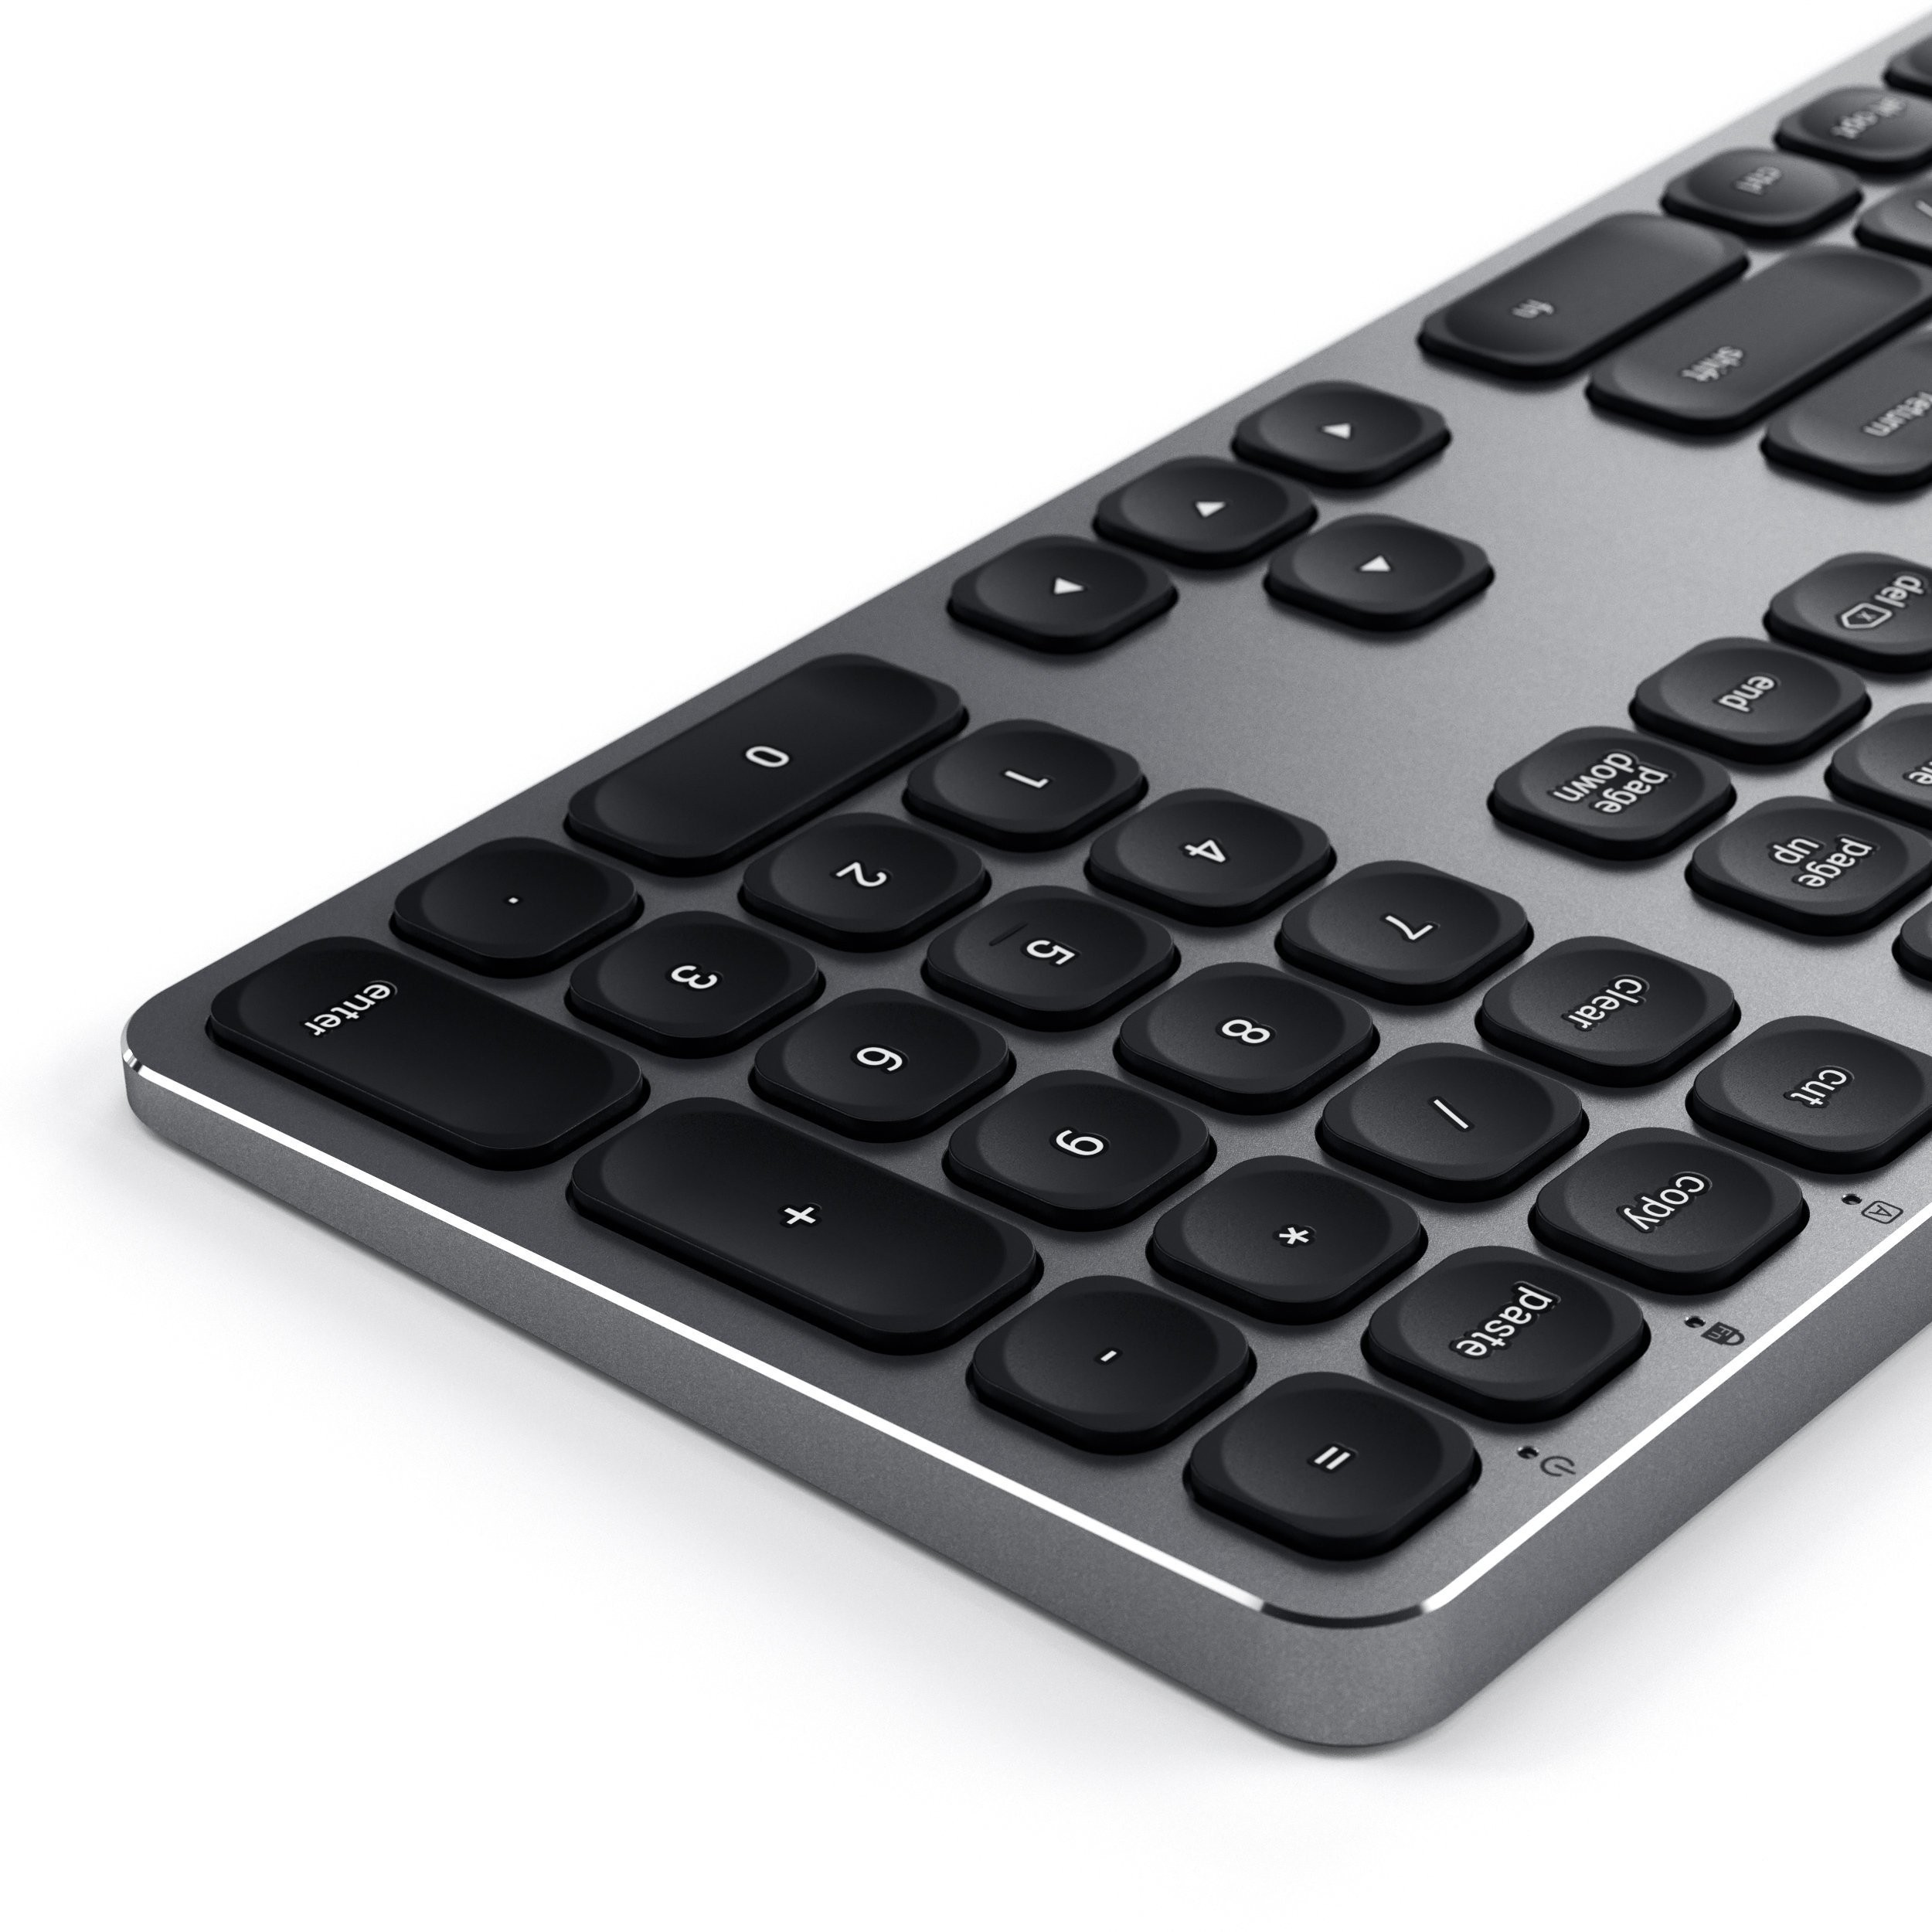 Satechi Wired Keyboard for MacOS - Space Grey, ST-AMWKM